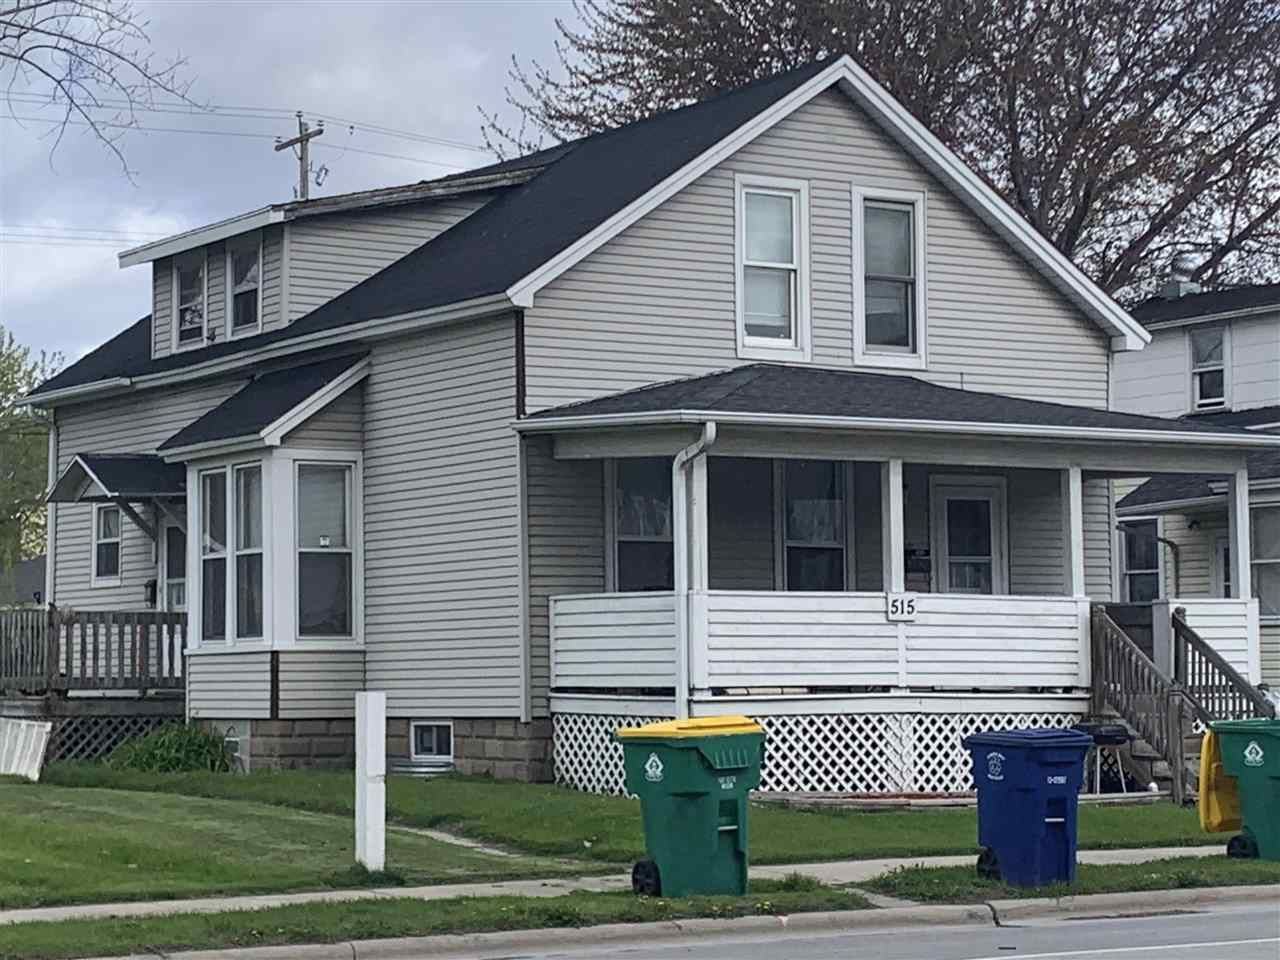 515 N BROADWAY Street, Green Bay, WI 54303 - MLS#: 50239369